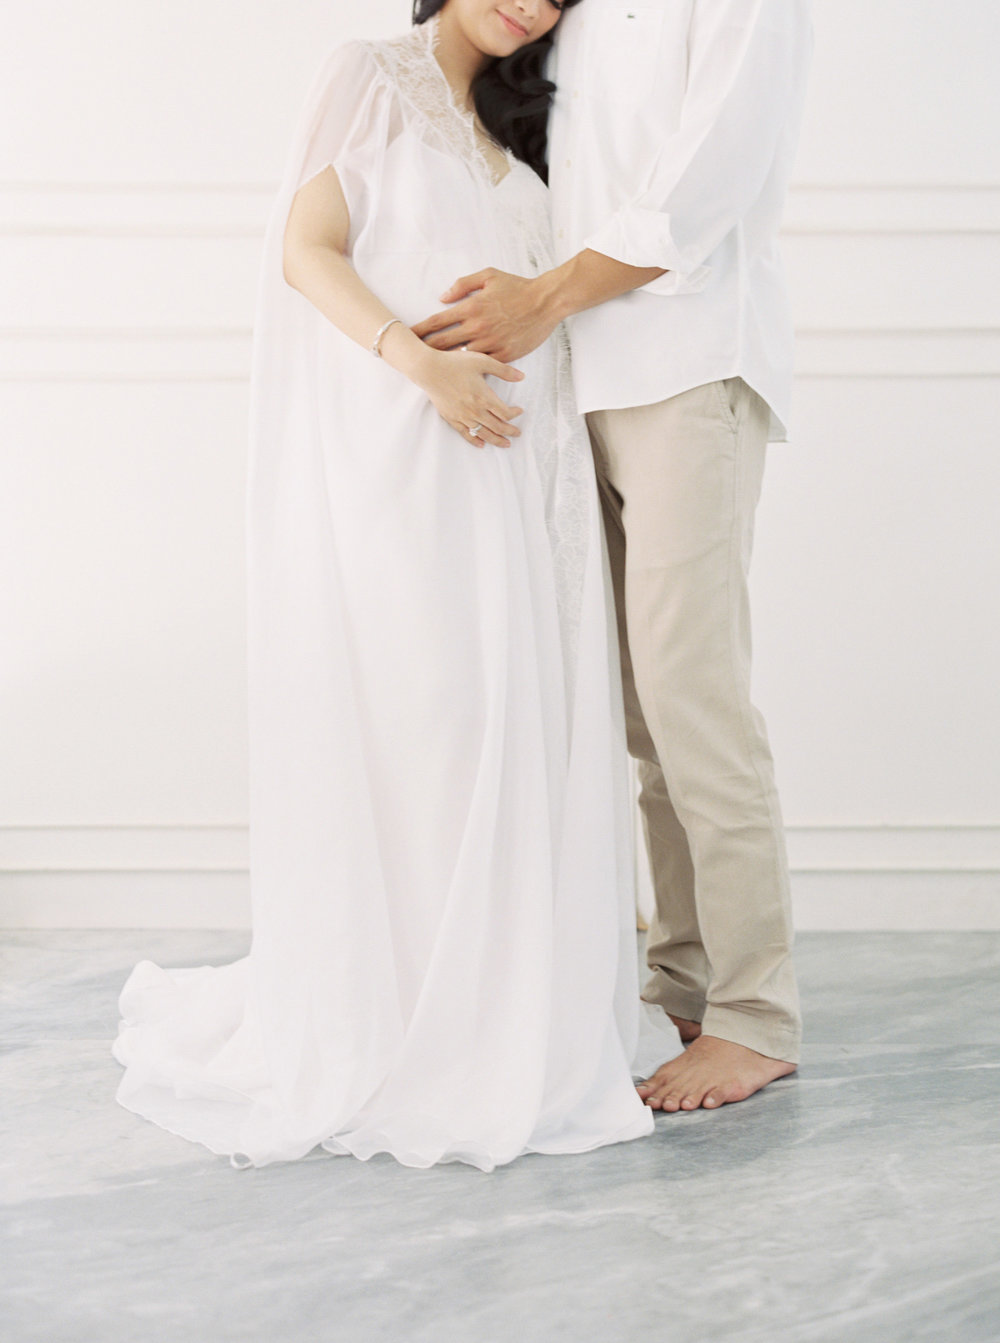 Romantic Elegant Couple Maternity Portrait - Studio June - Film Photography & Styling - Jakarta-35.jpg